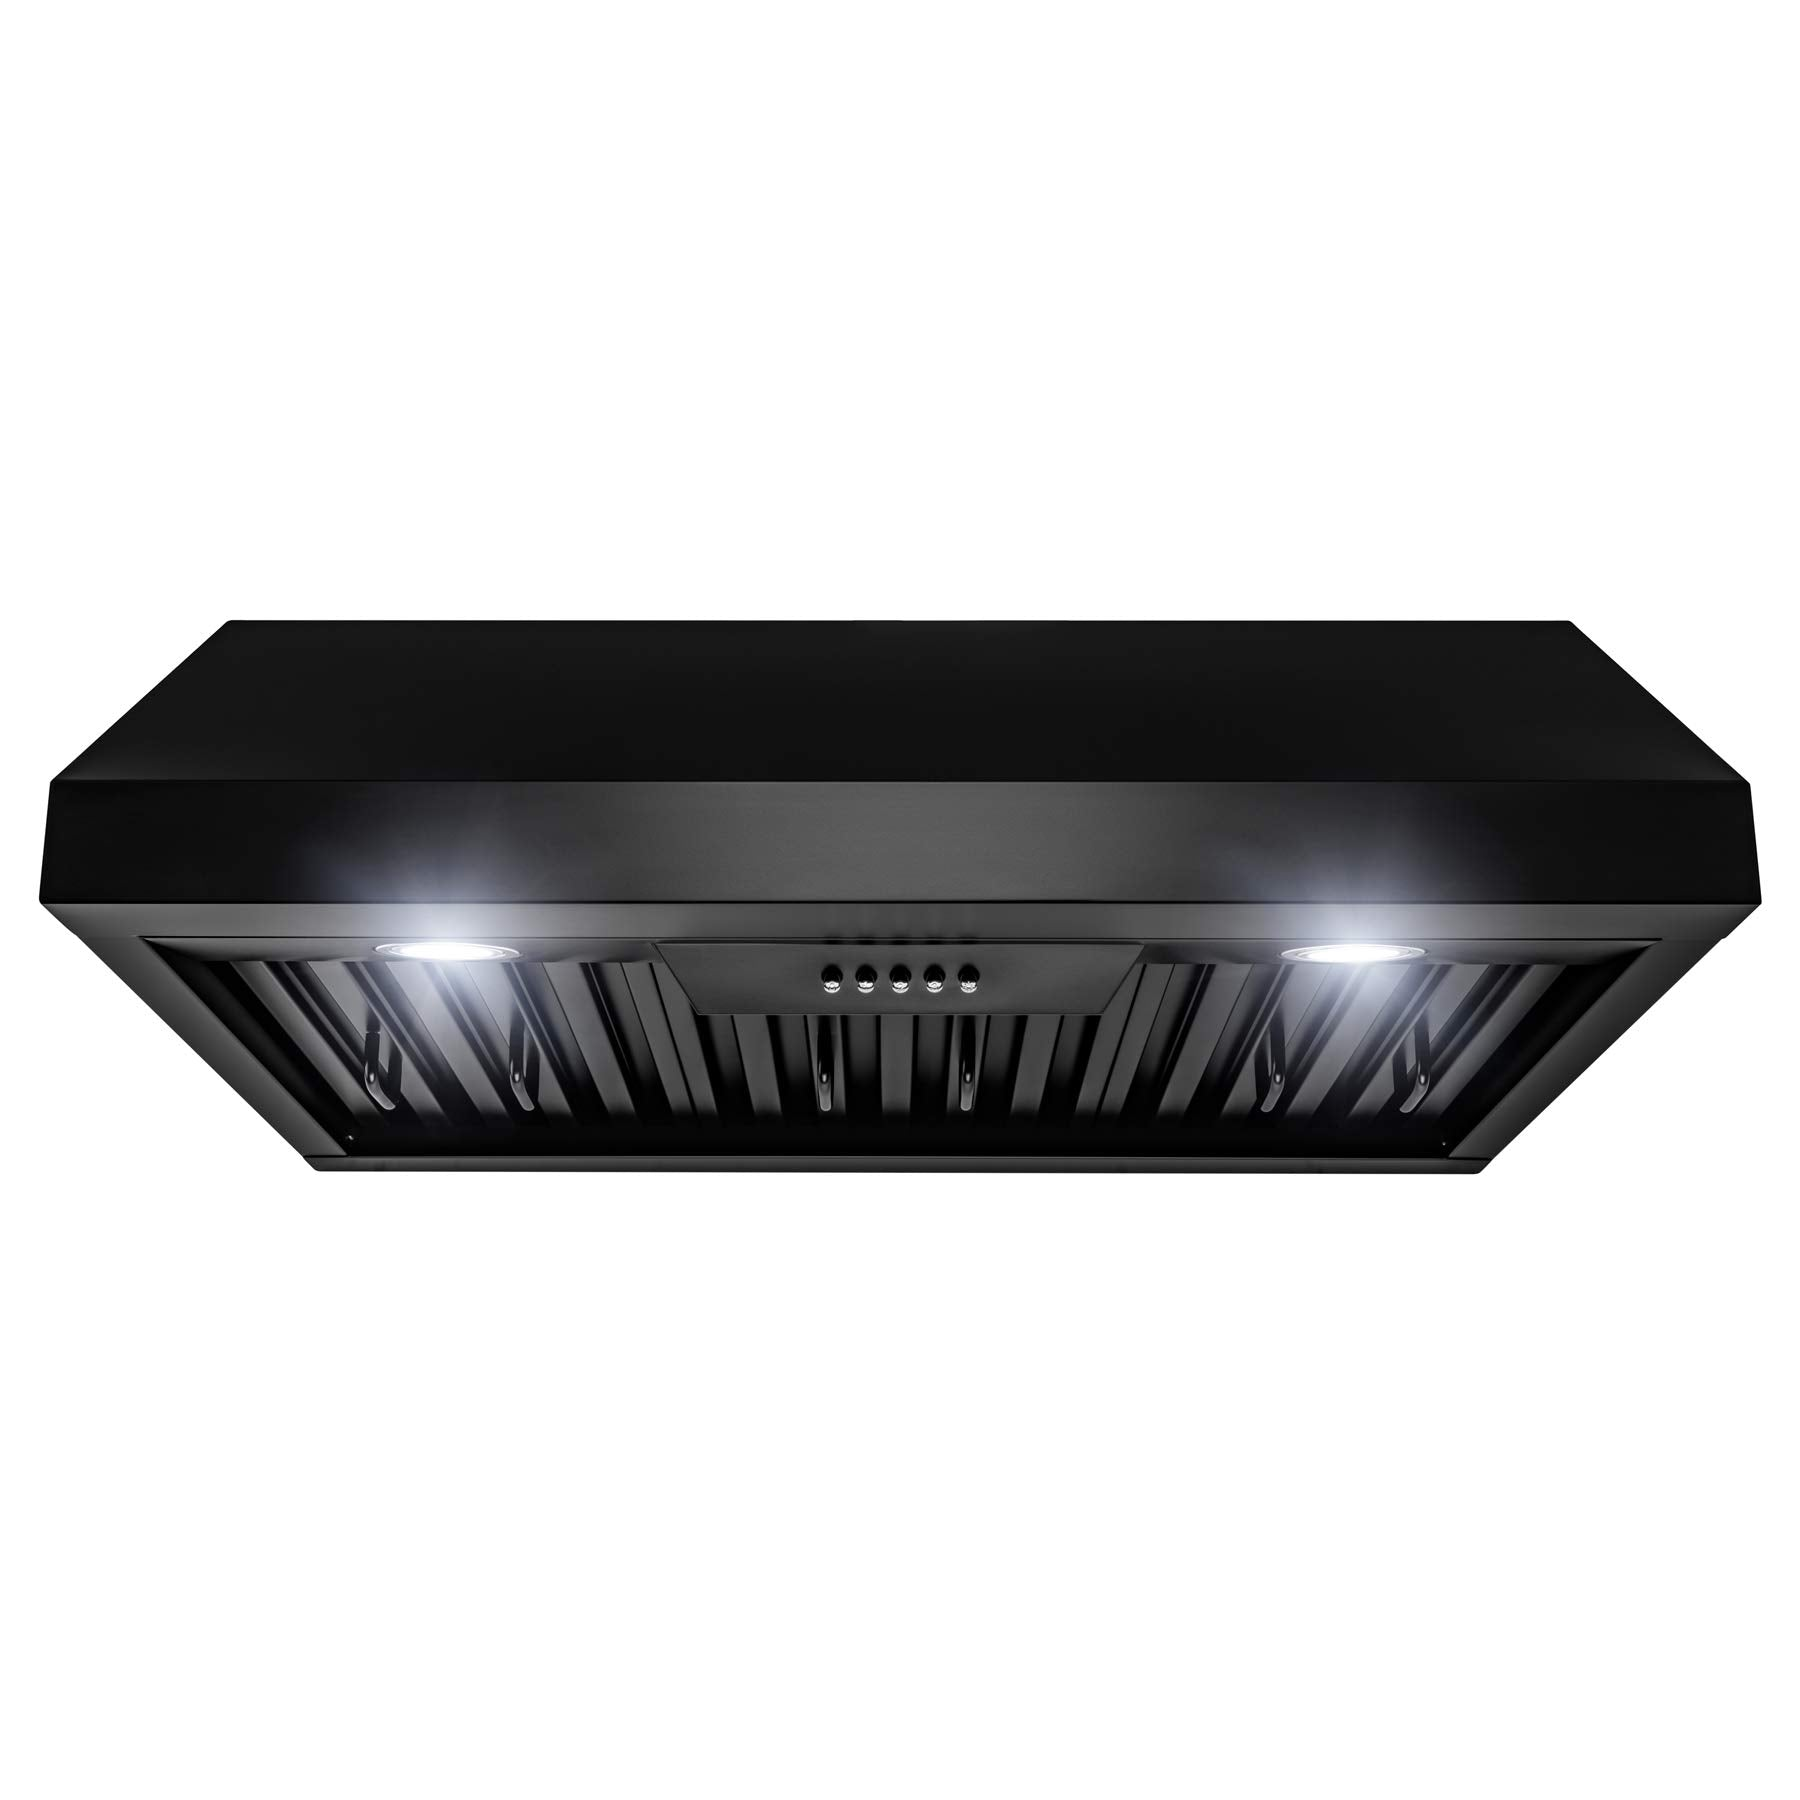 AKDY 30 in. 500 CFM Ducted Under Cabinet Range Hood in Black Painted Stainless Steel with LEDs and Push Buttons